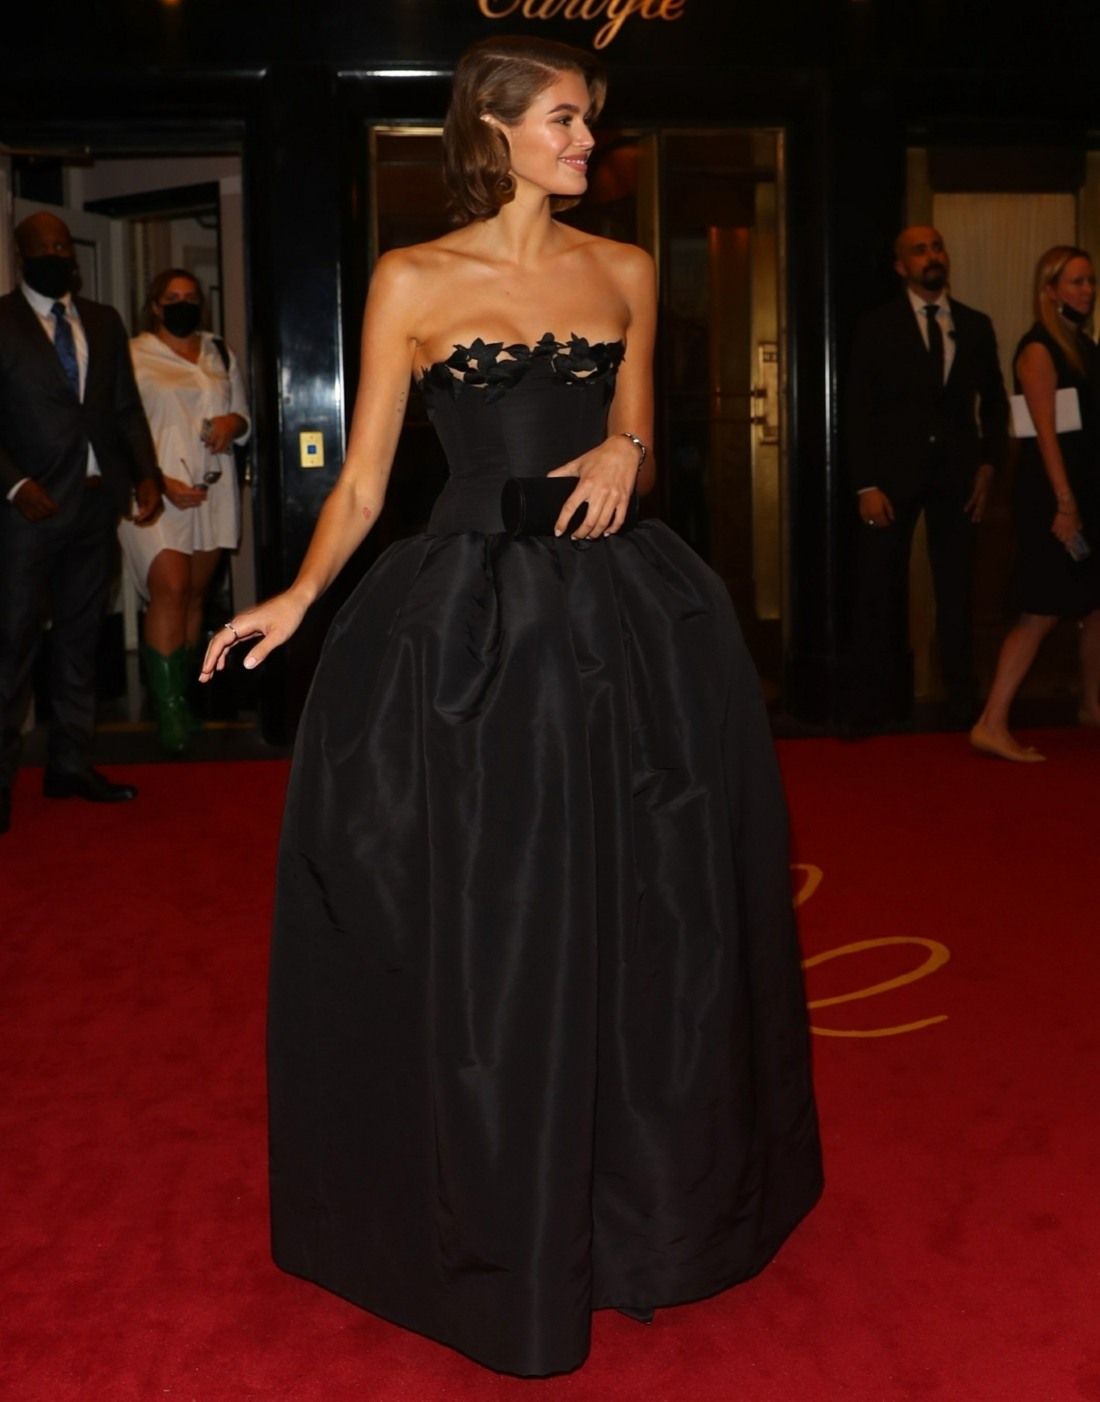 Kaia Gerber departs from the Carlyle Hotel for the MET Gala